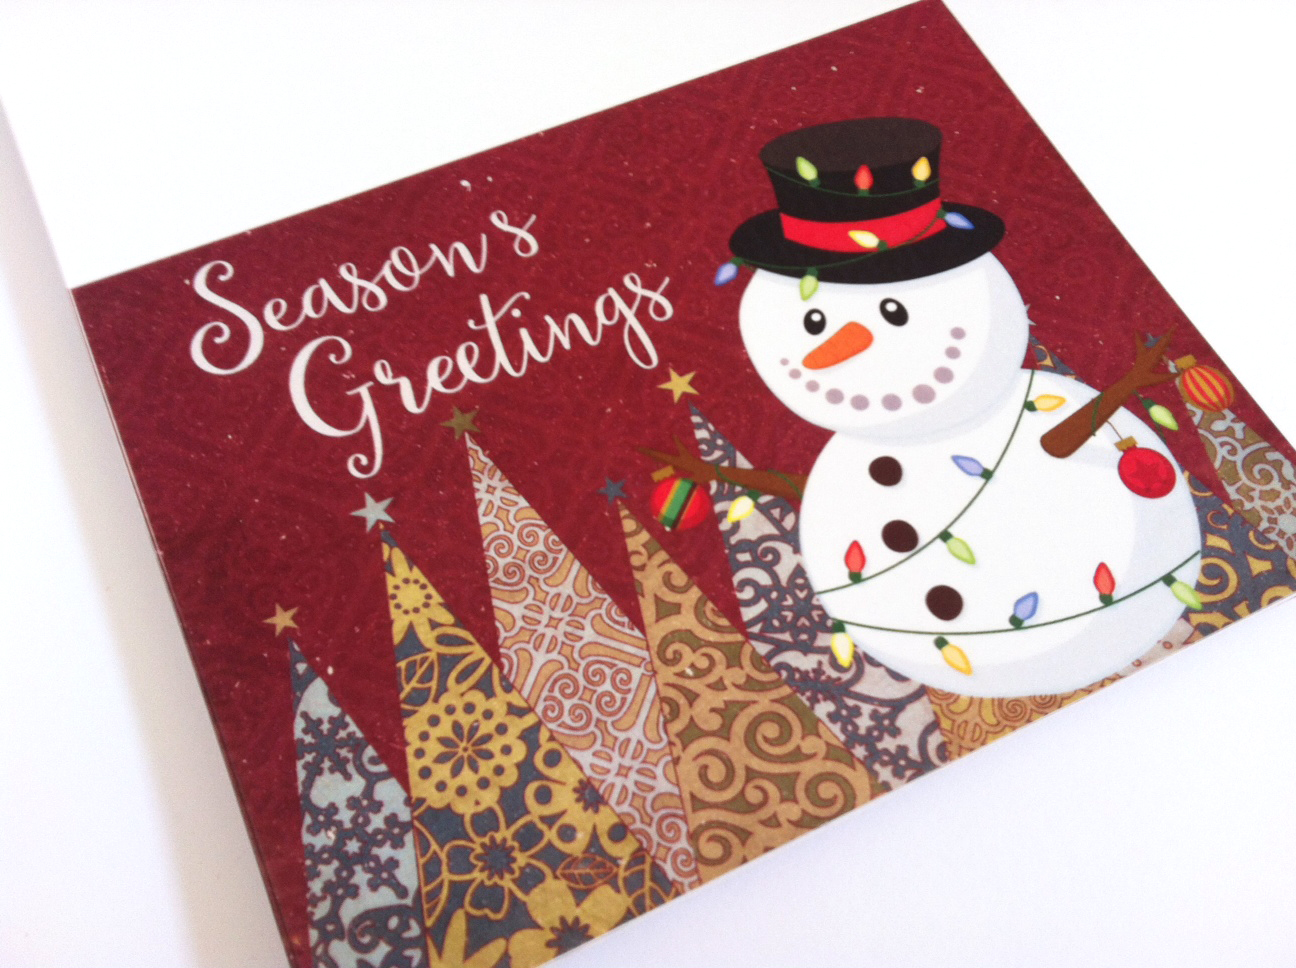 Snowman christmas cards with season s greetings phrase